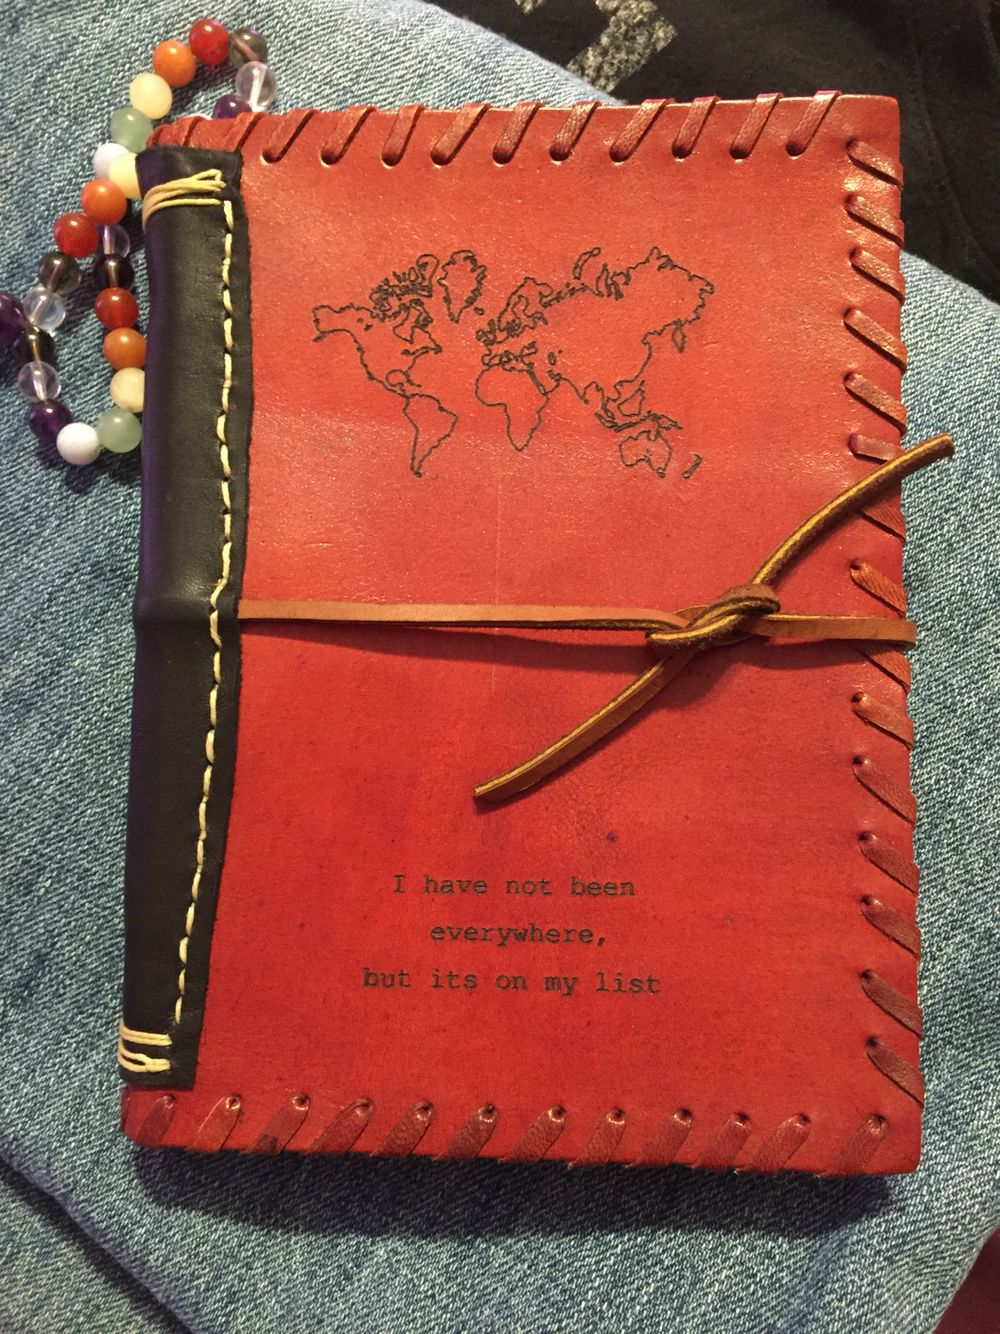 I added some extra leather to my adventure journal.